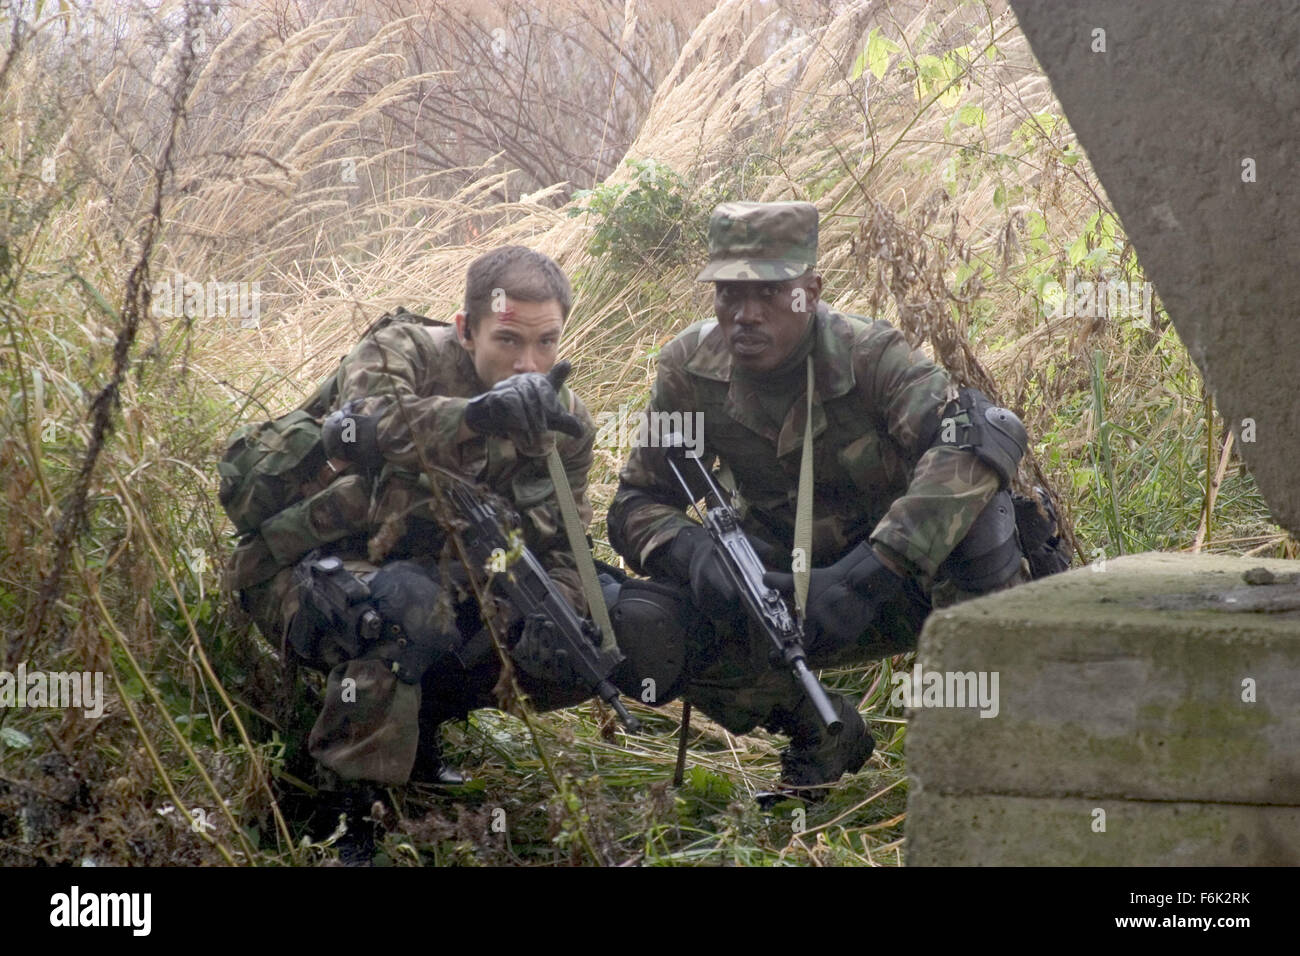 RELEASE DATE: September 6, 2005. MOVIE TITLE: The Marksman. STUDIO: Columbia TriStar. PLOT: Chechen rebels take - Stock Image